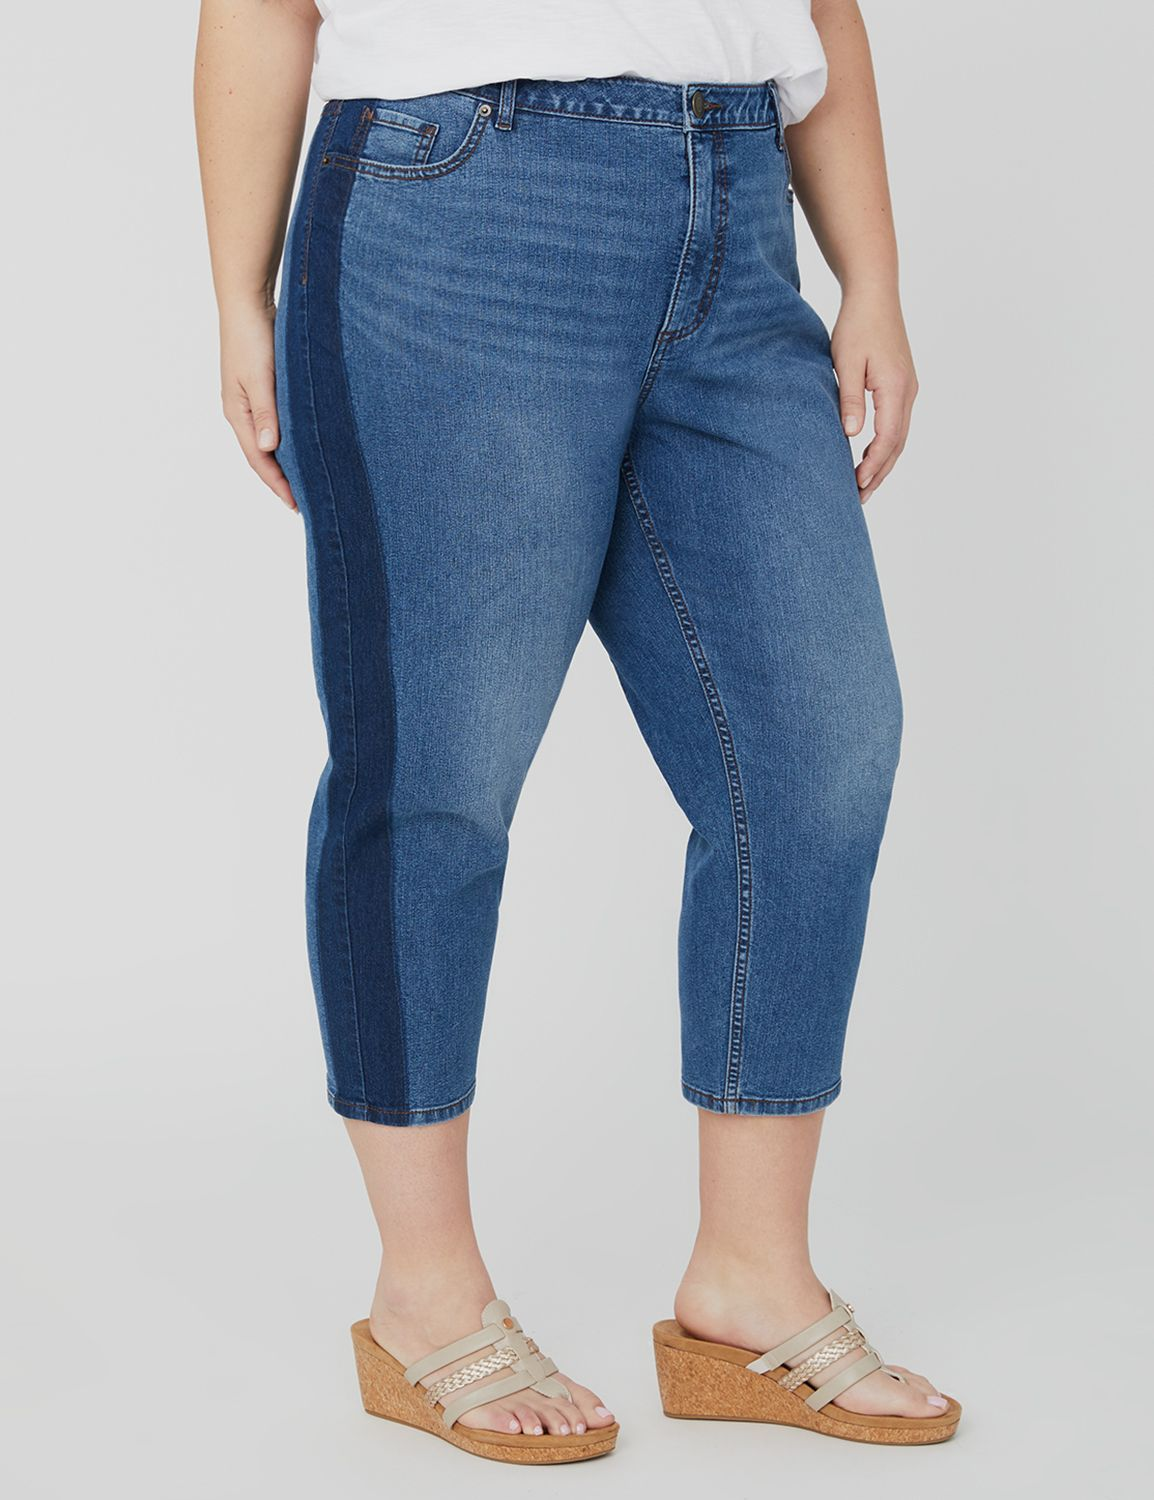 Jean Capri with Dark-Wash Stripe 1088046 2-TONE DENIM WASH ON SIDE S MP-300099567